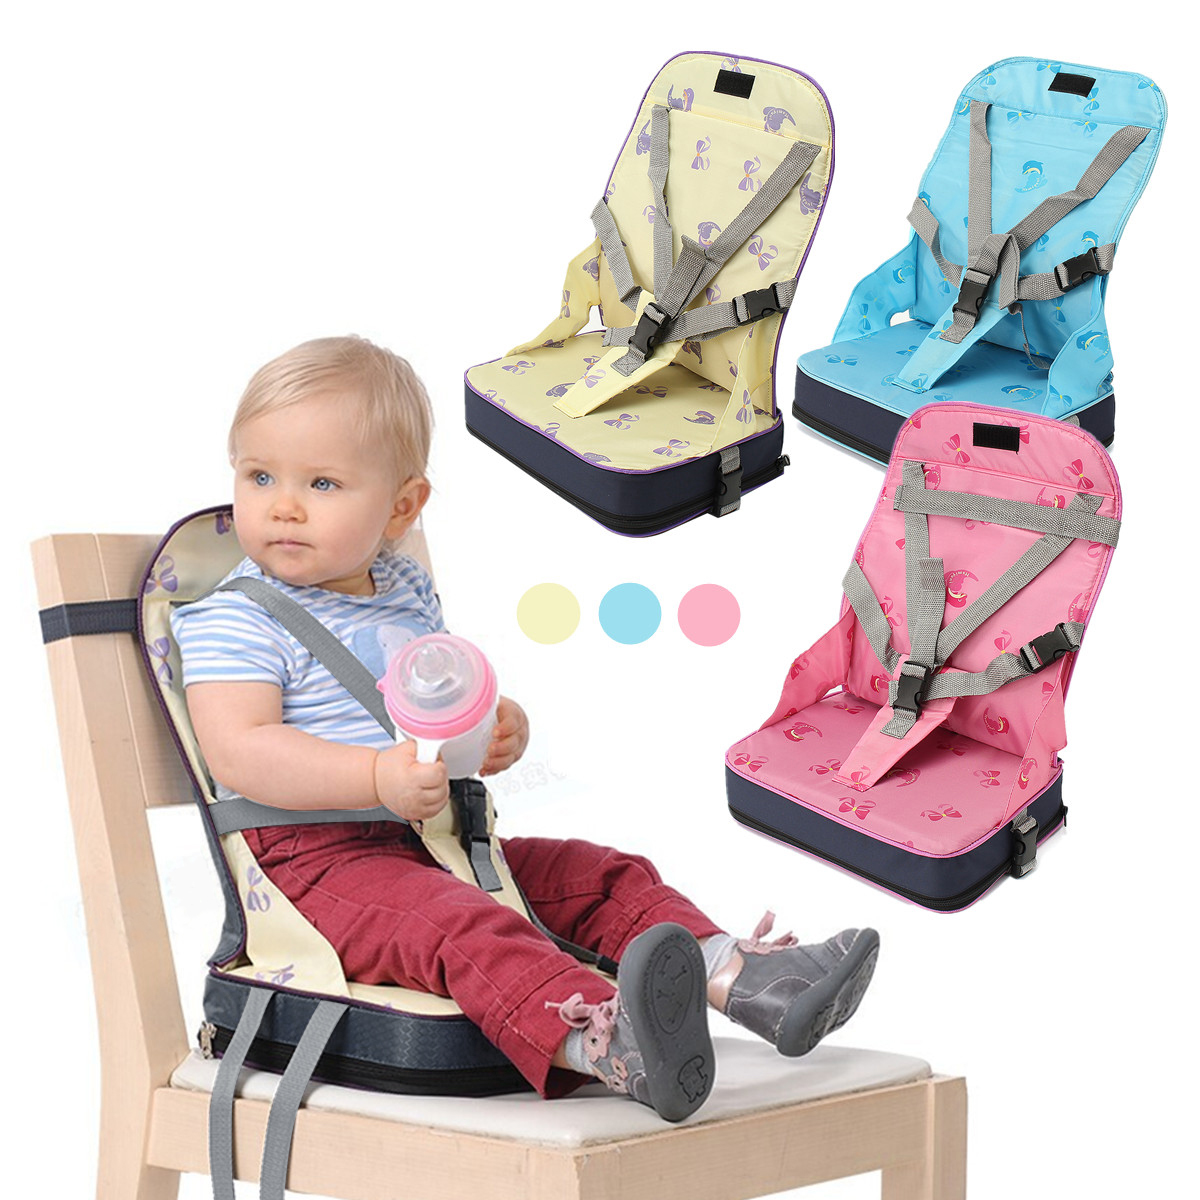 Baby Kids High Chair Dining Feeding Chair Booster Seat  With Harness Safety Travel Foldable Folding Portable